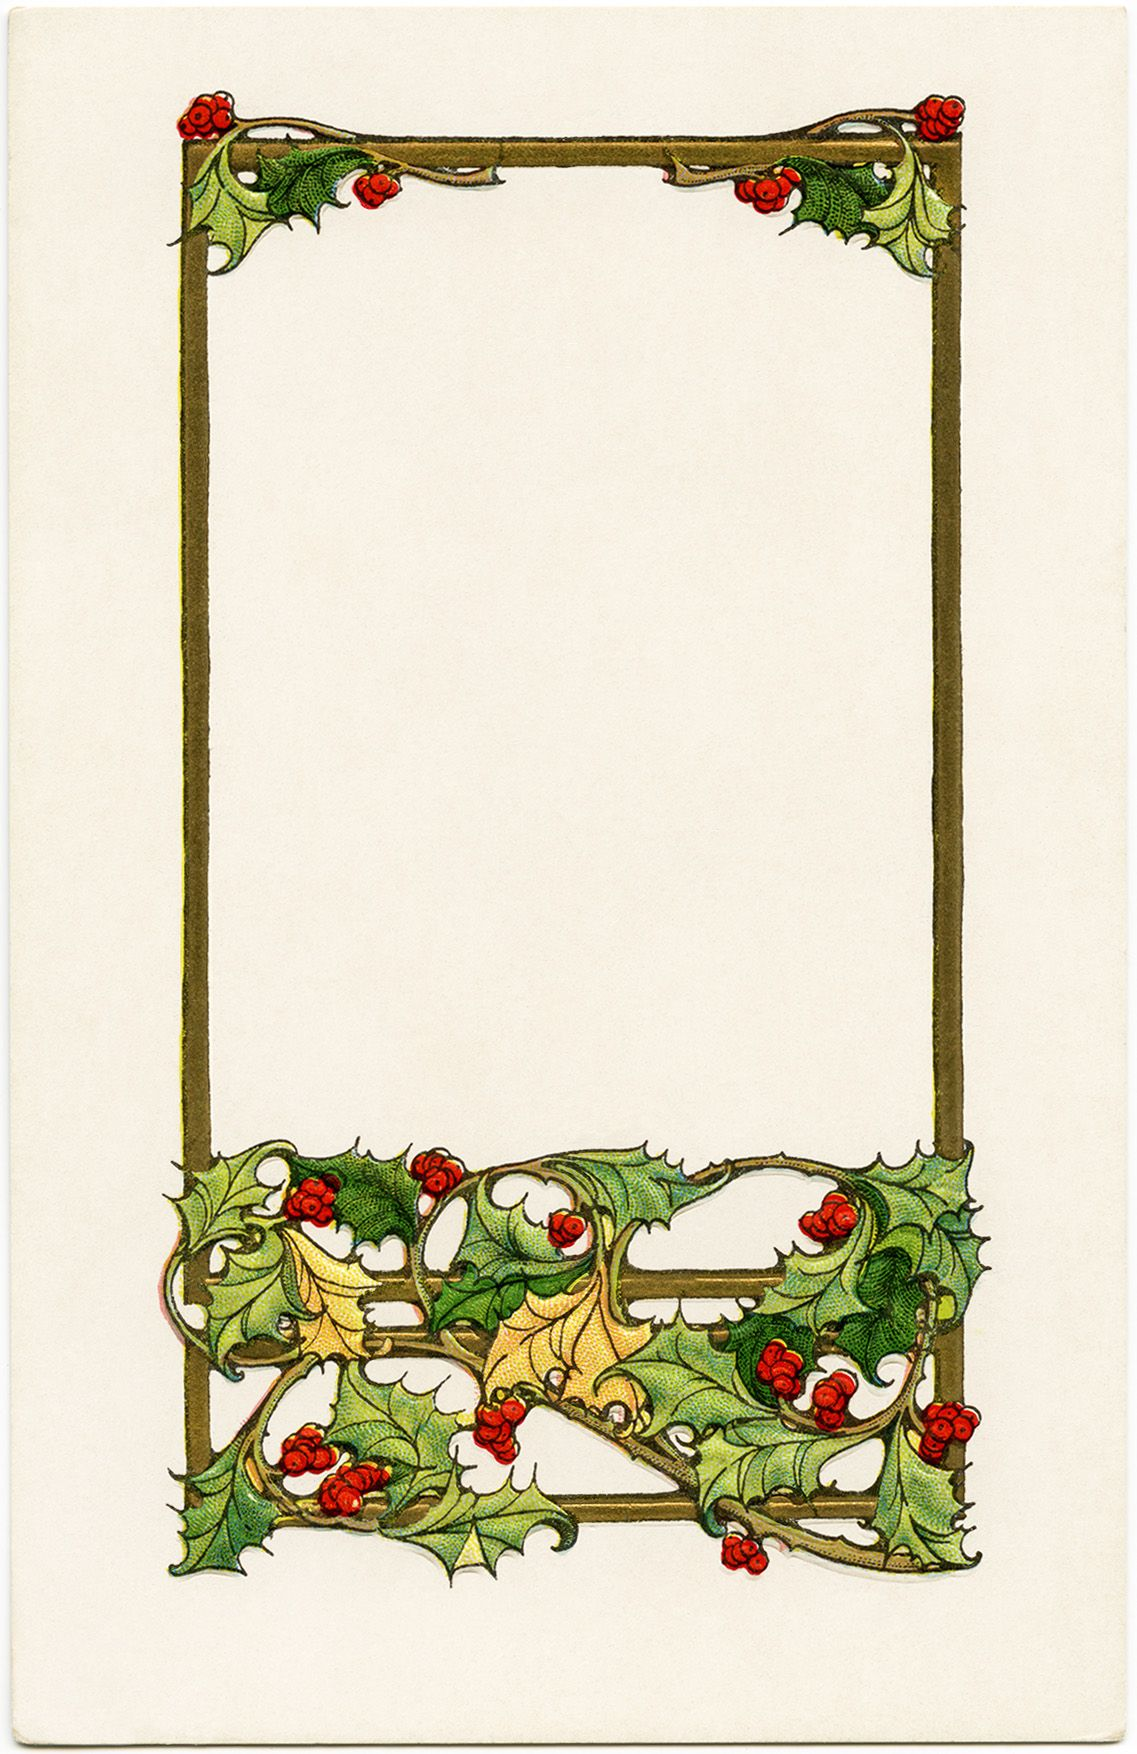 Vintage yuletide greetings christmas postcard free download vintage christmas postcard old fashioned christmas graphic holly and berries clipart yuletide greetings antique holiday clip art kristyandbryce Image collections